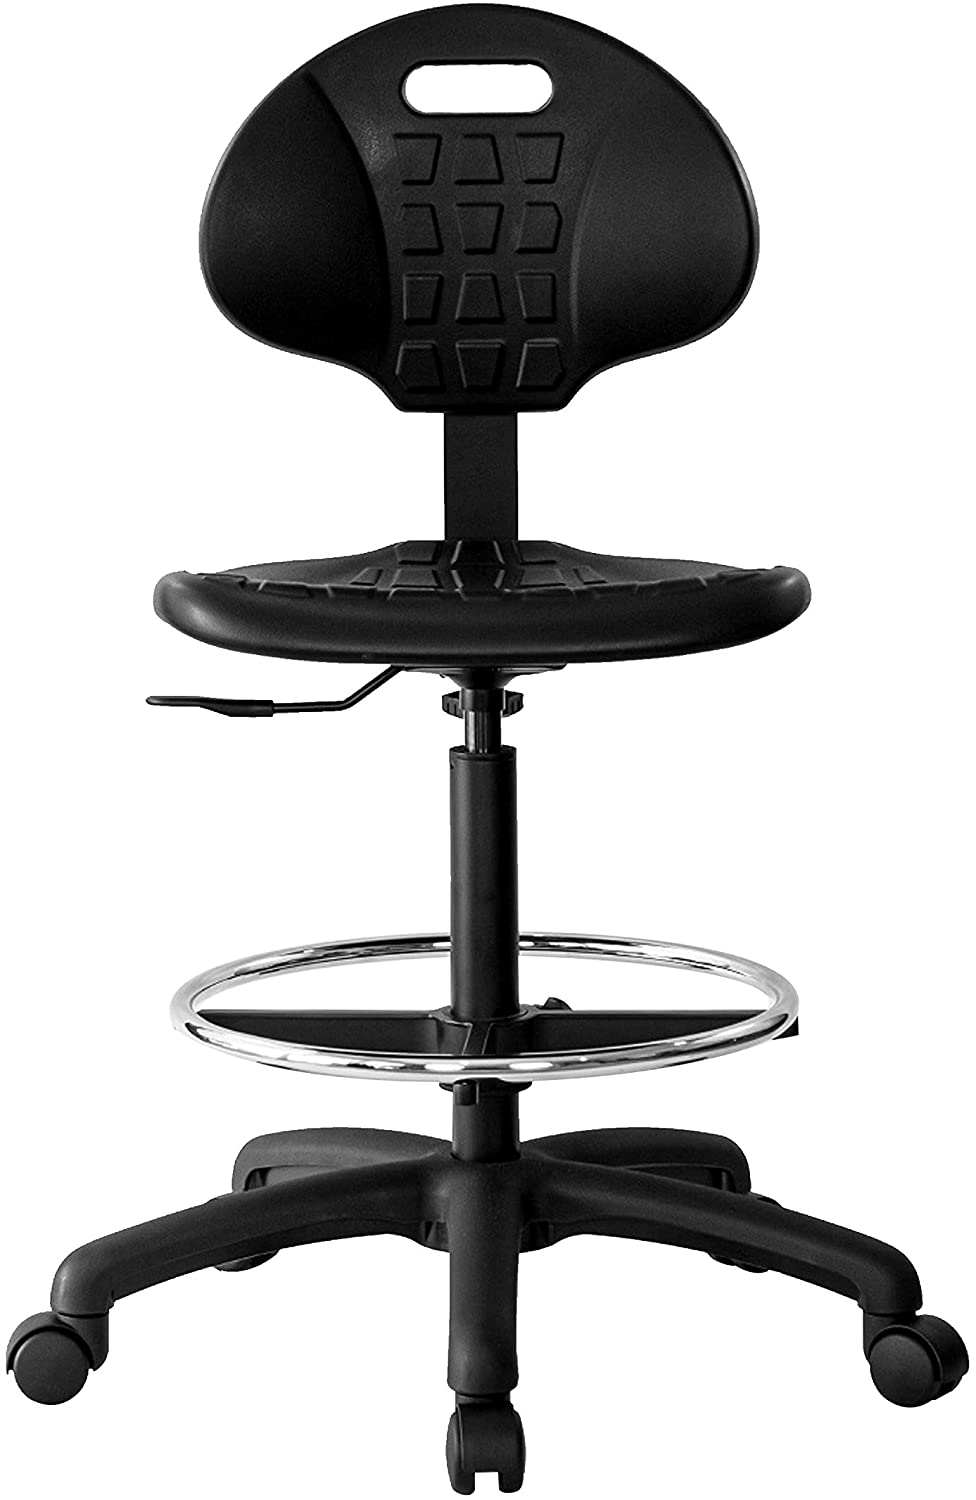 CHAIR MASTER store Drafting Stool - Easy to Ergonomic Polyureth Gorgeous Clean